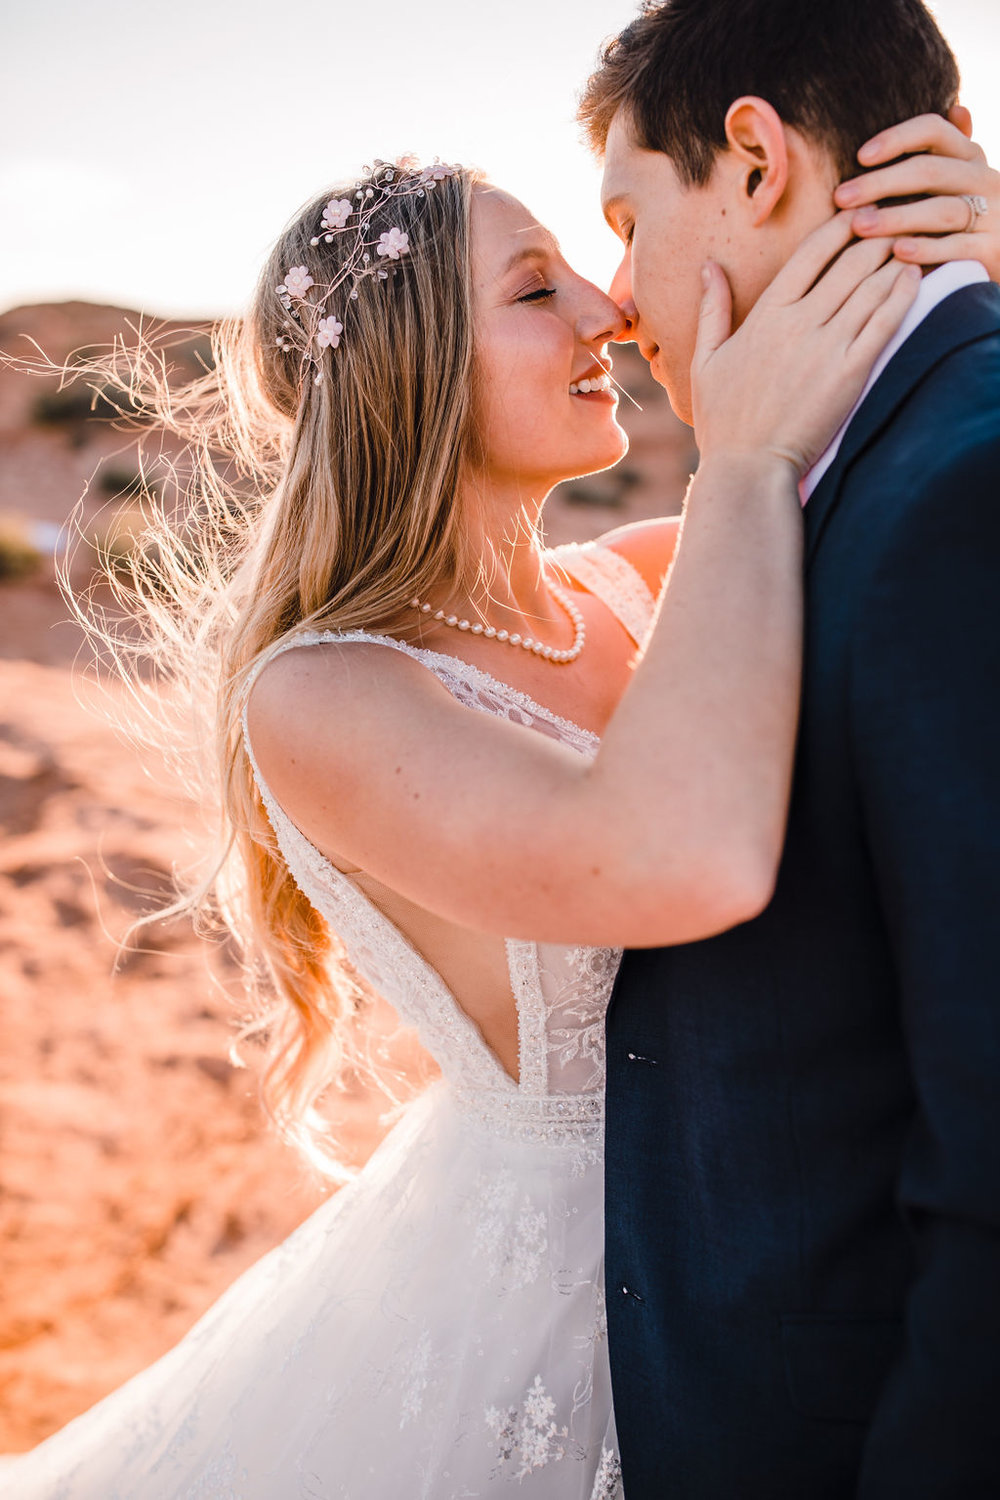 page arizona formal photographer best white dainty floral crown bohemian bride lace wedding dress kissing romantic